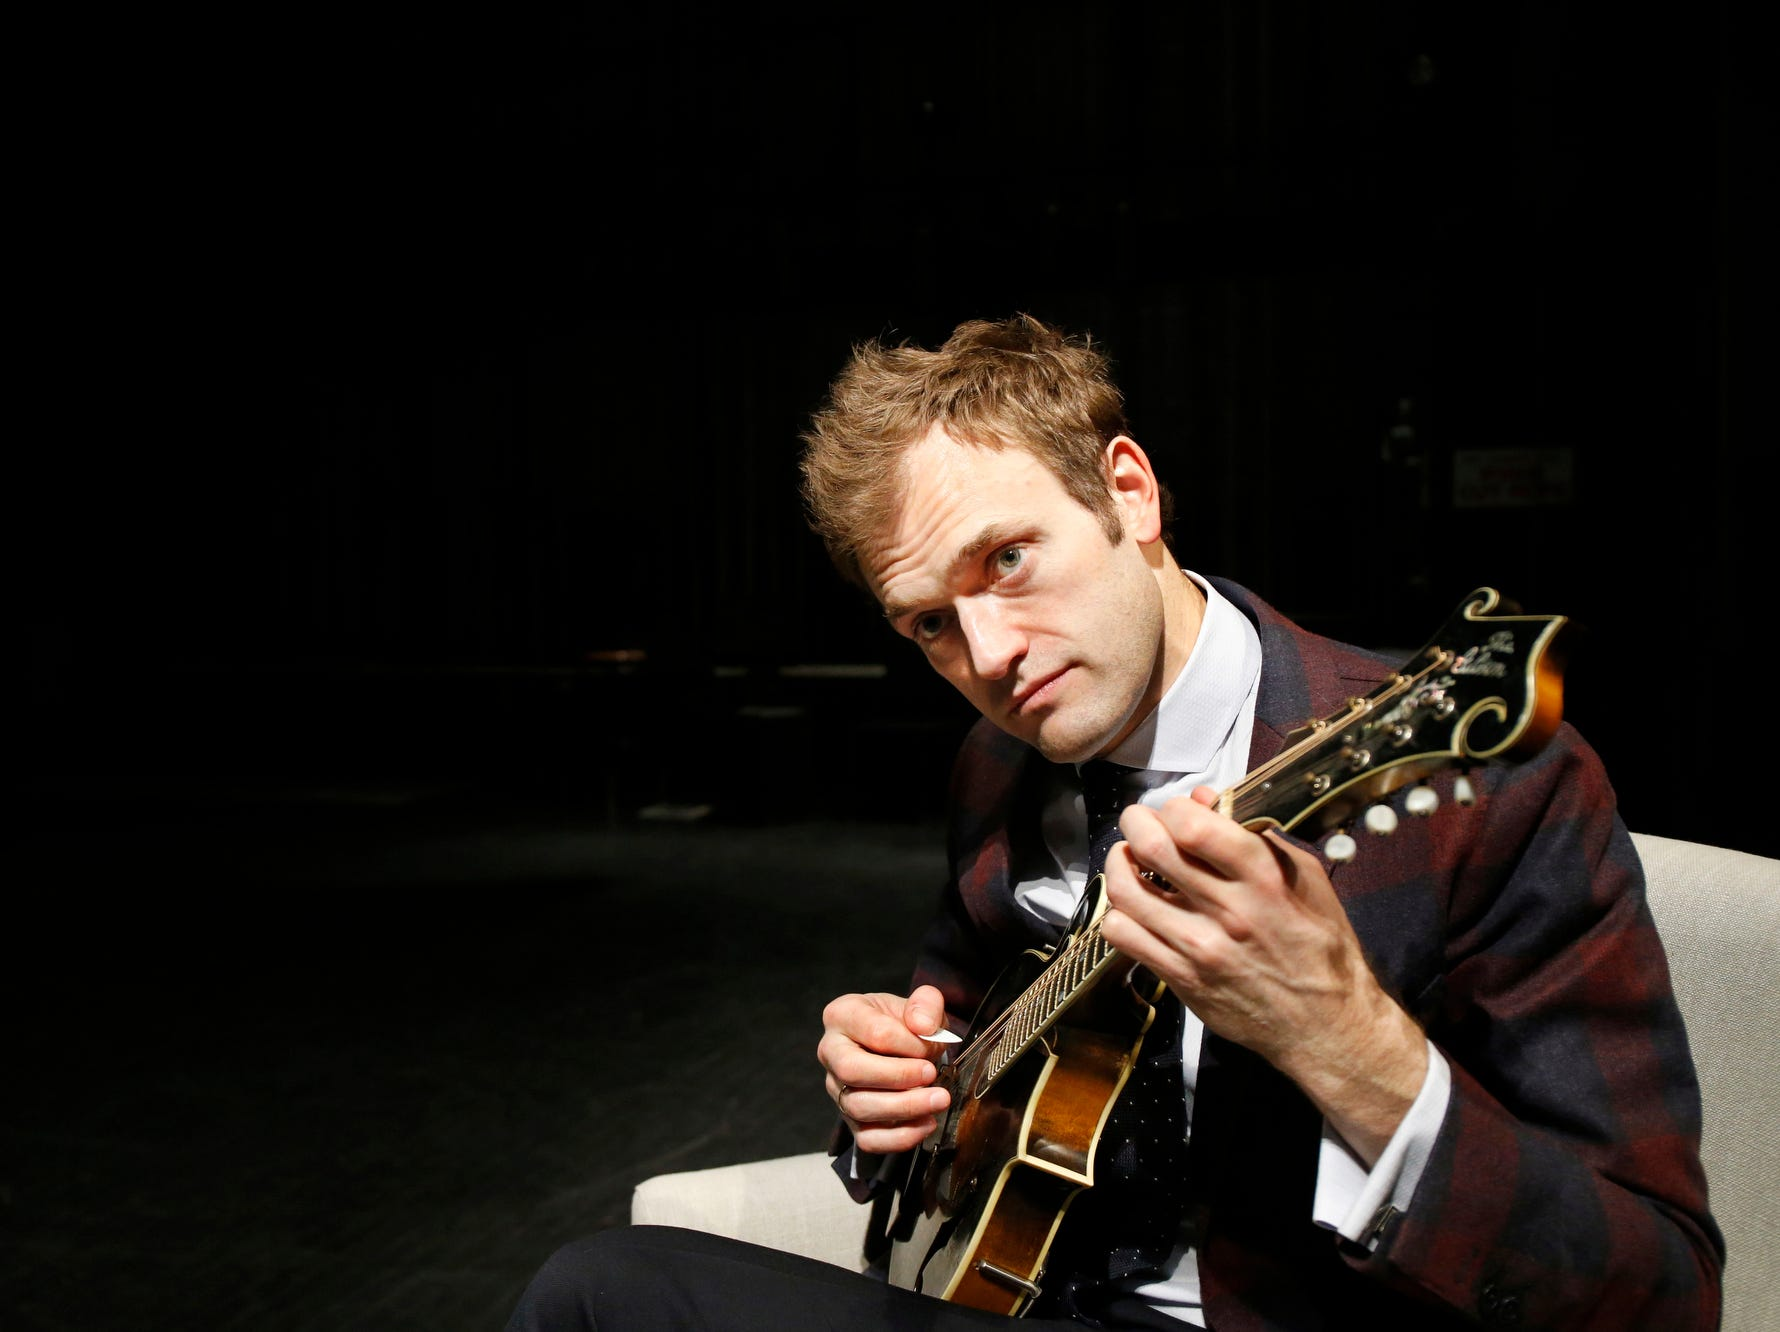 April 27 LIVE FROM HERE WITH CHRIS THILE: 4:45 p.m. Ryman Auditorium, $49-$89